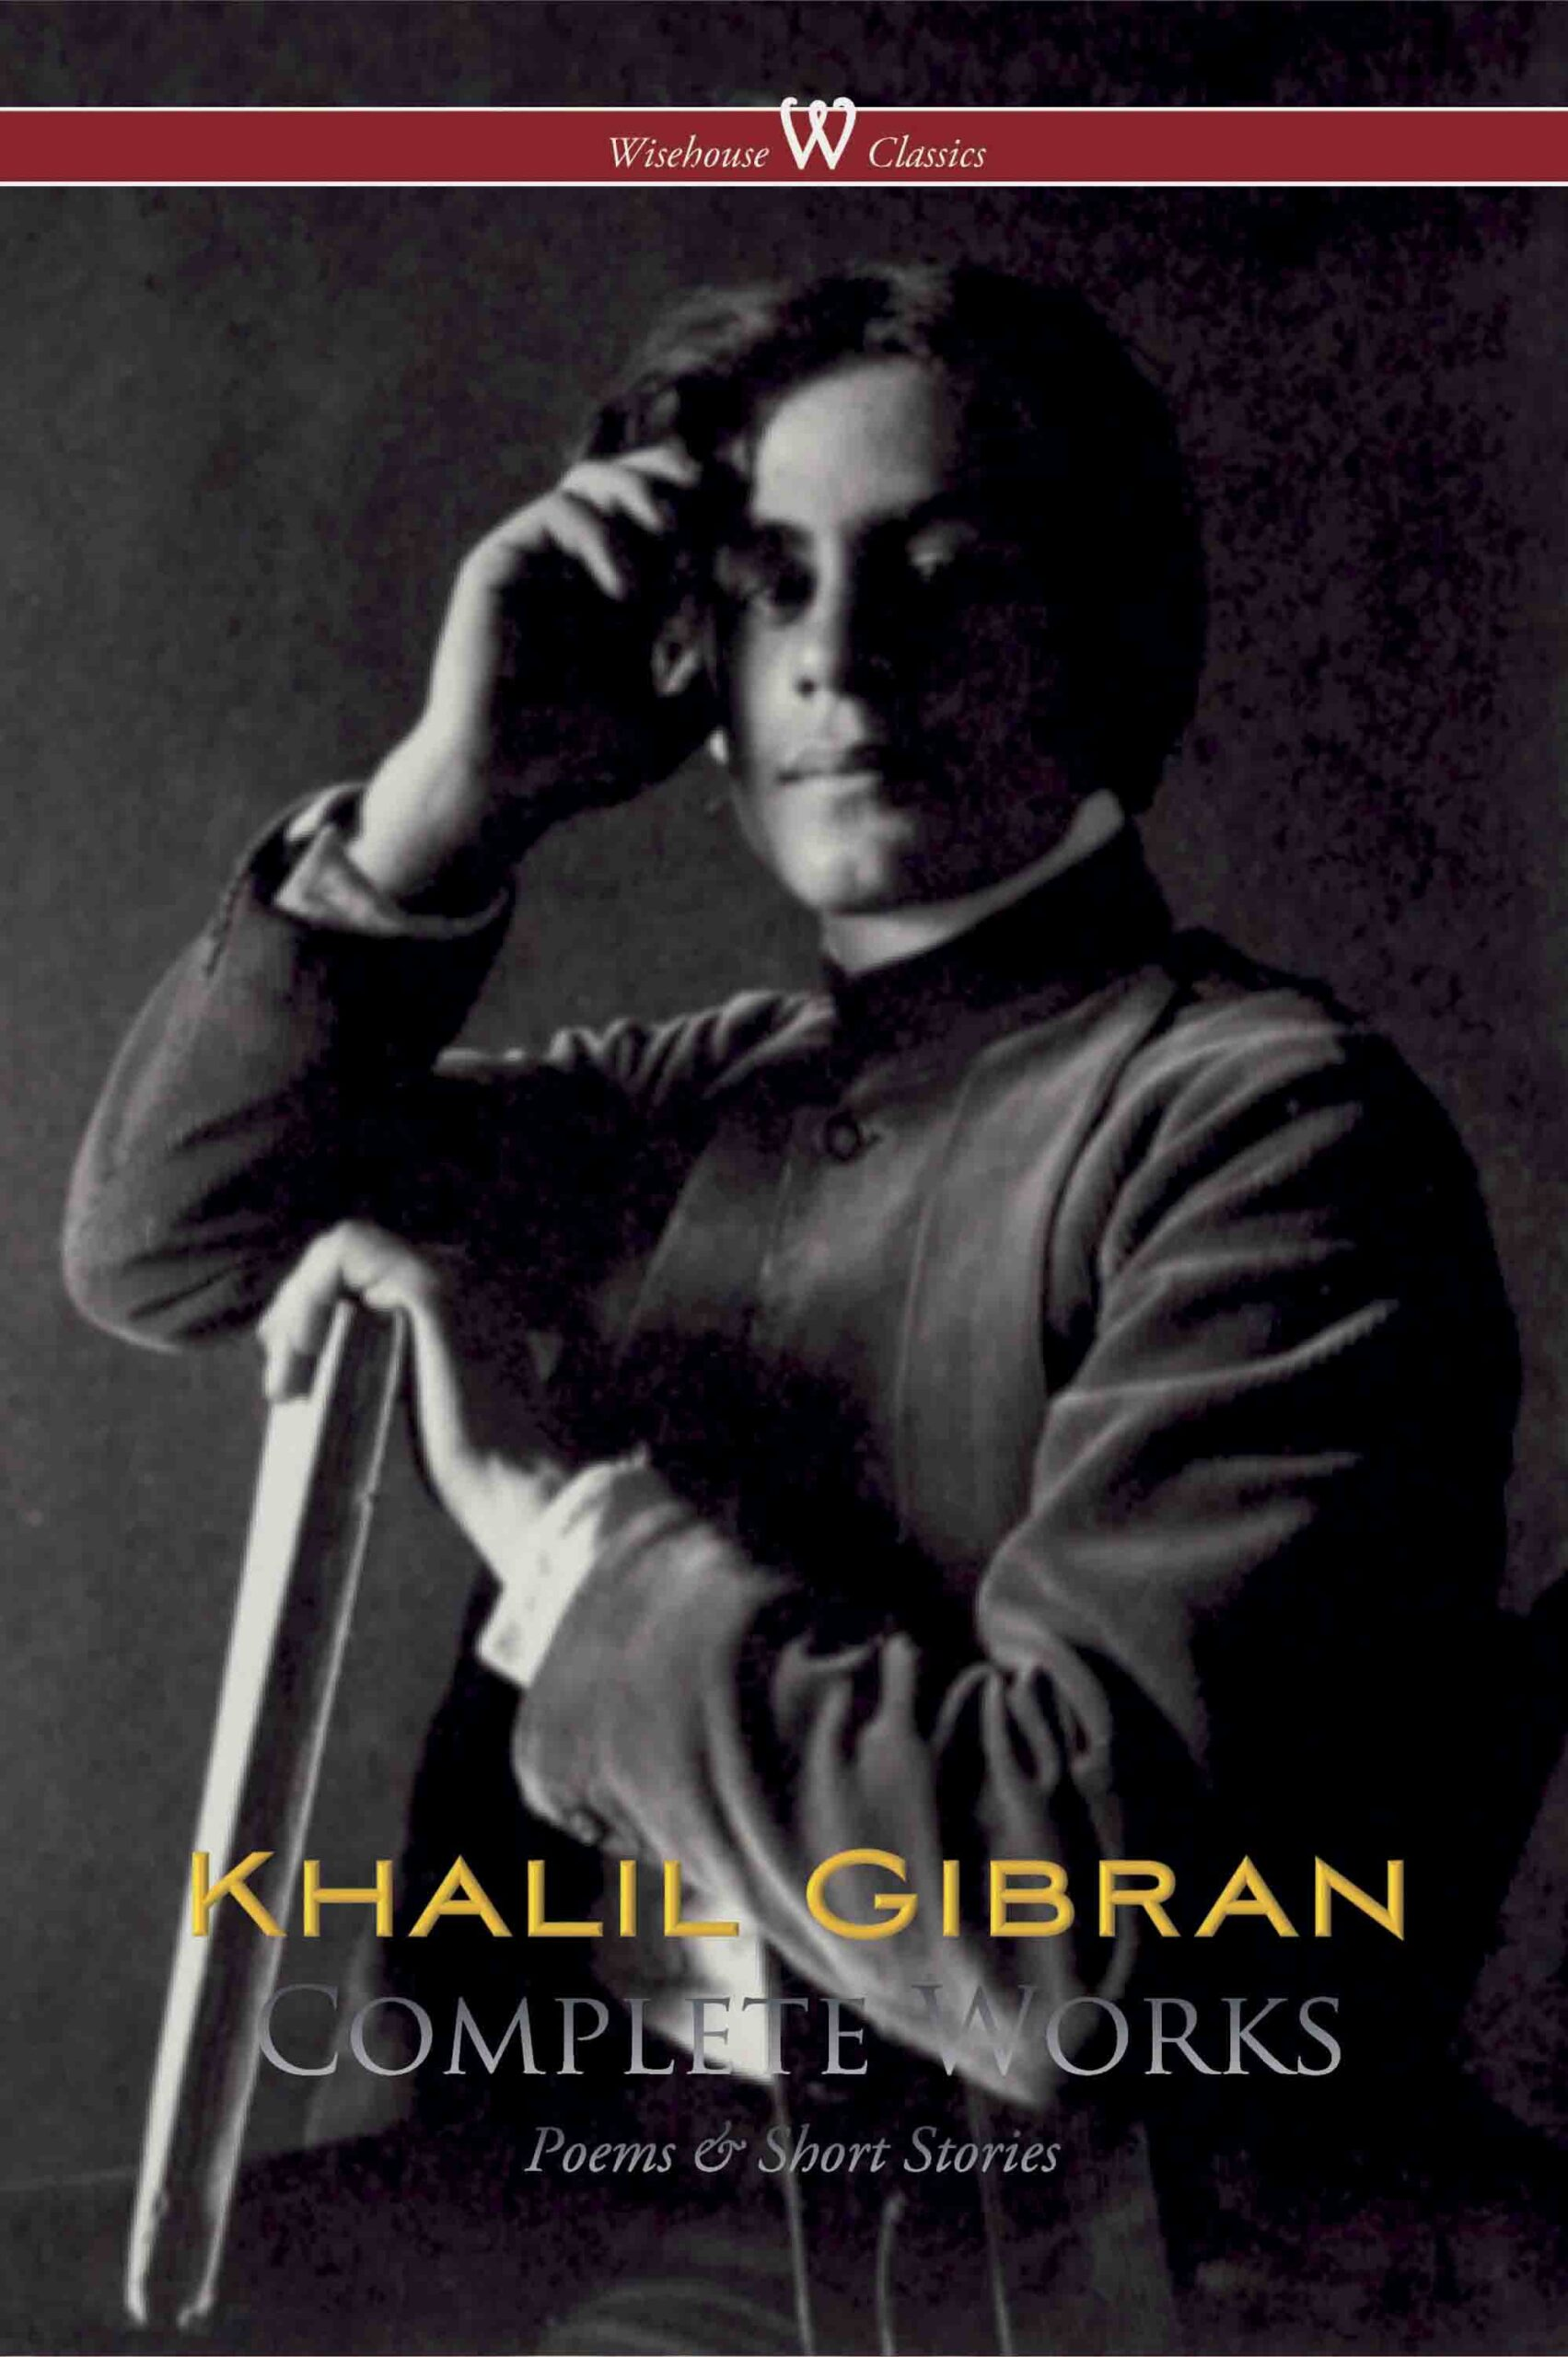 Khalil Gibran: Complete Works (Wisehouse Classics)